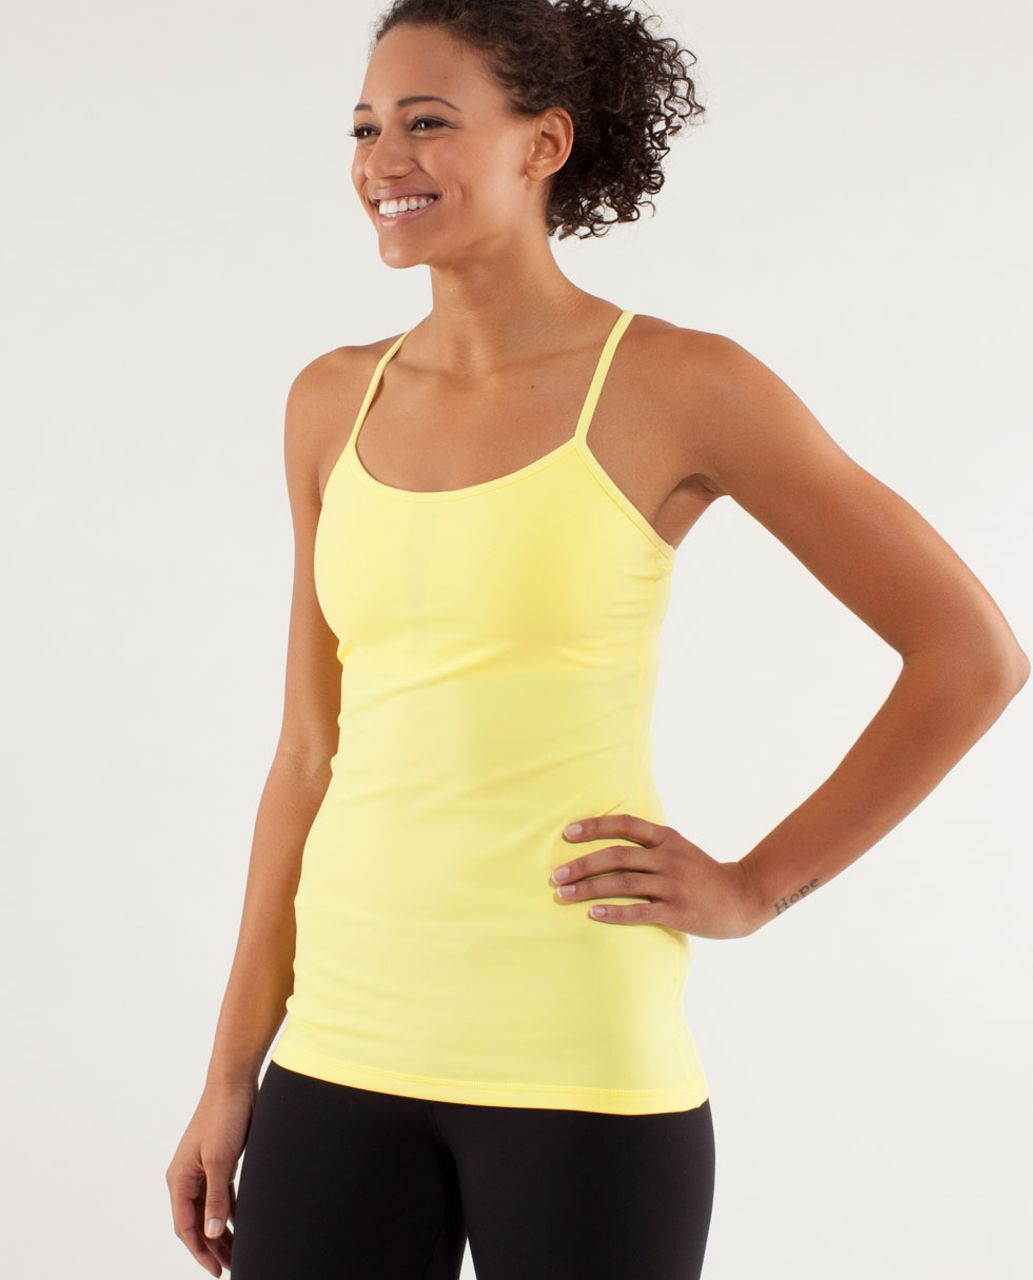 Lululemon Power Y Tank *Luon Light - Mellow Lemon